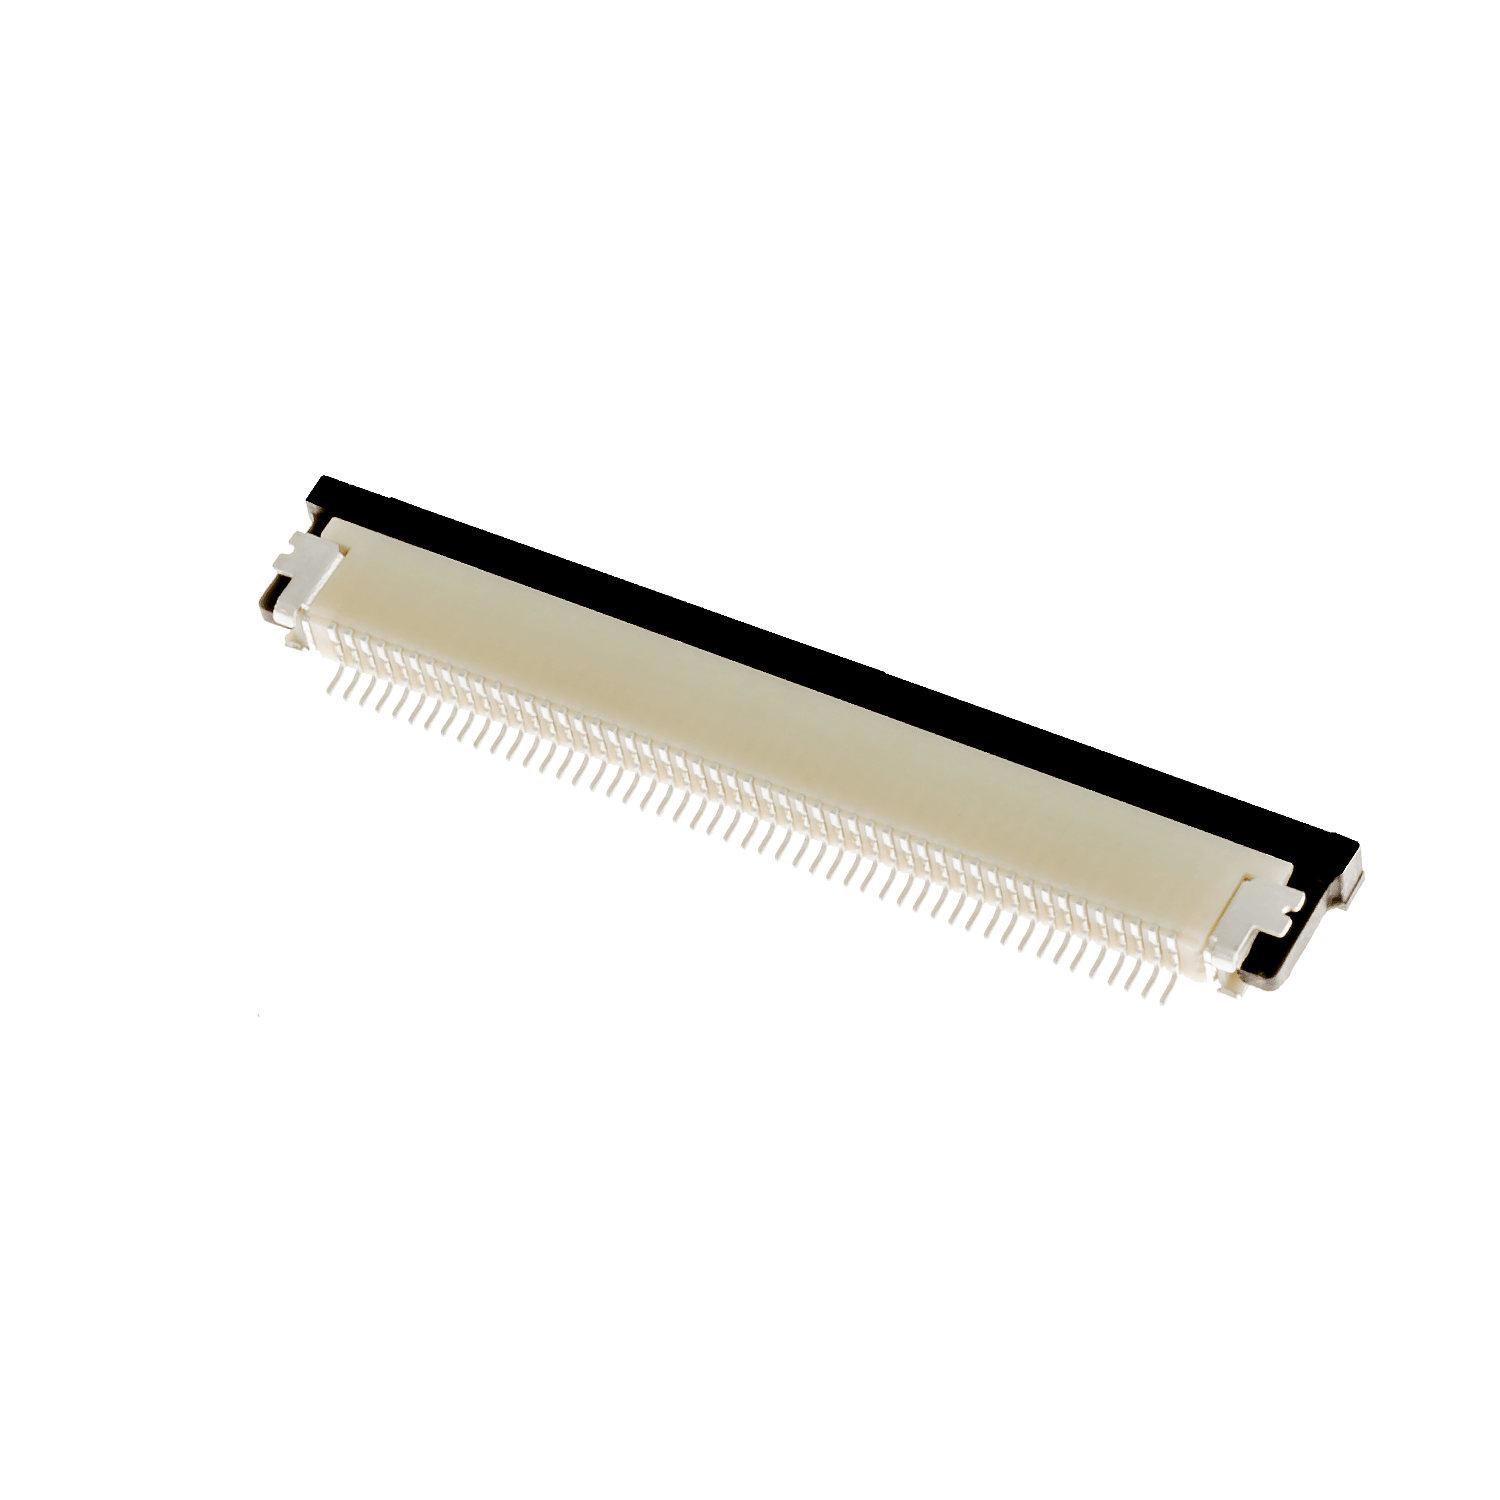 ZIF0550DH – ZIF connector, 0.5 mm pitch, 50 pins, downside contact